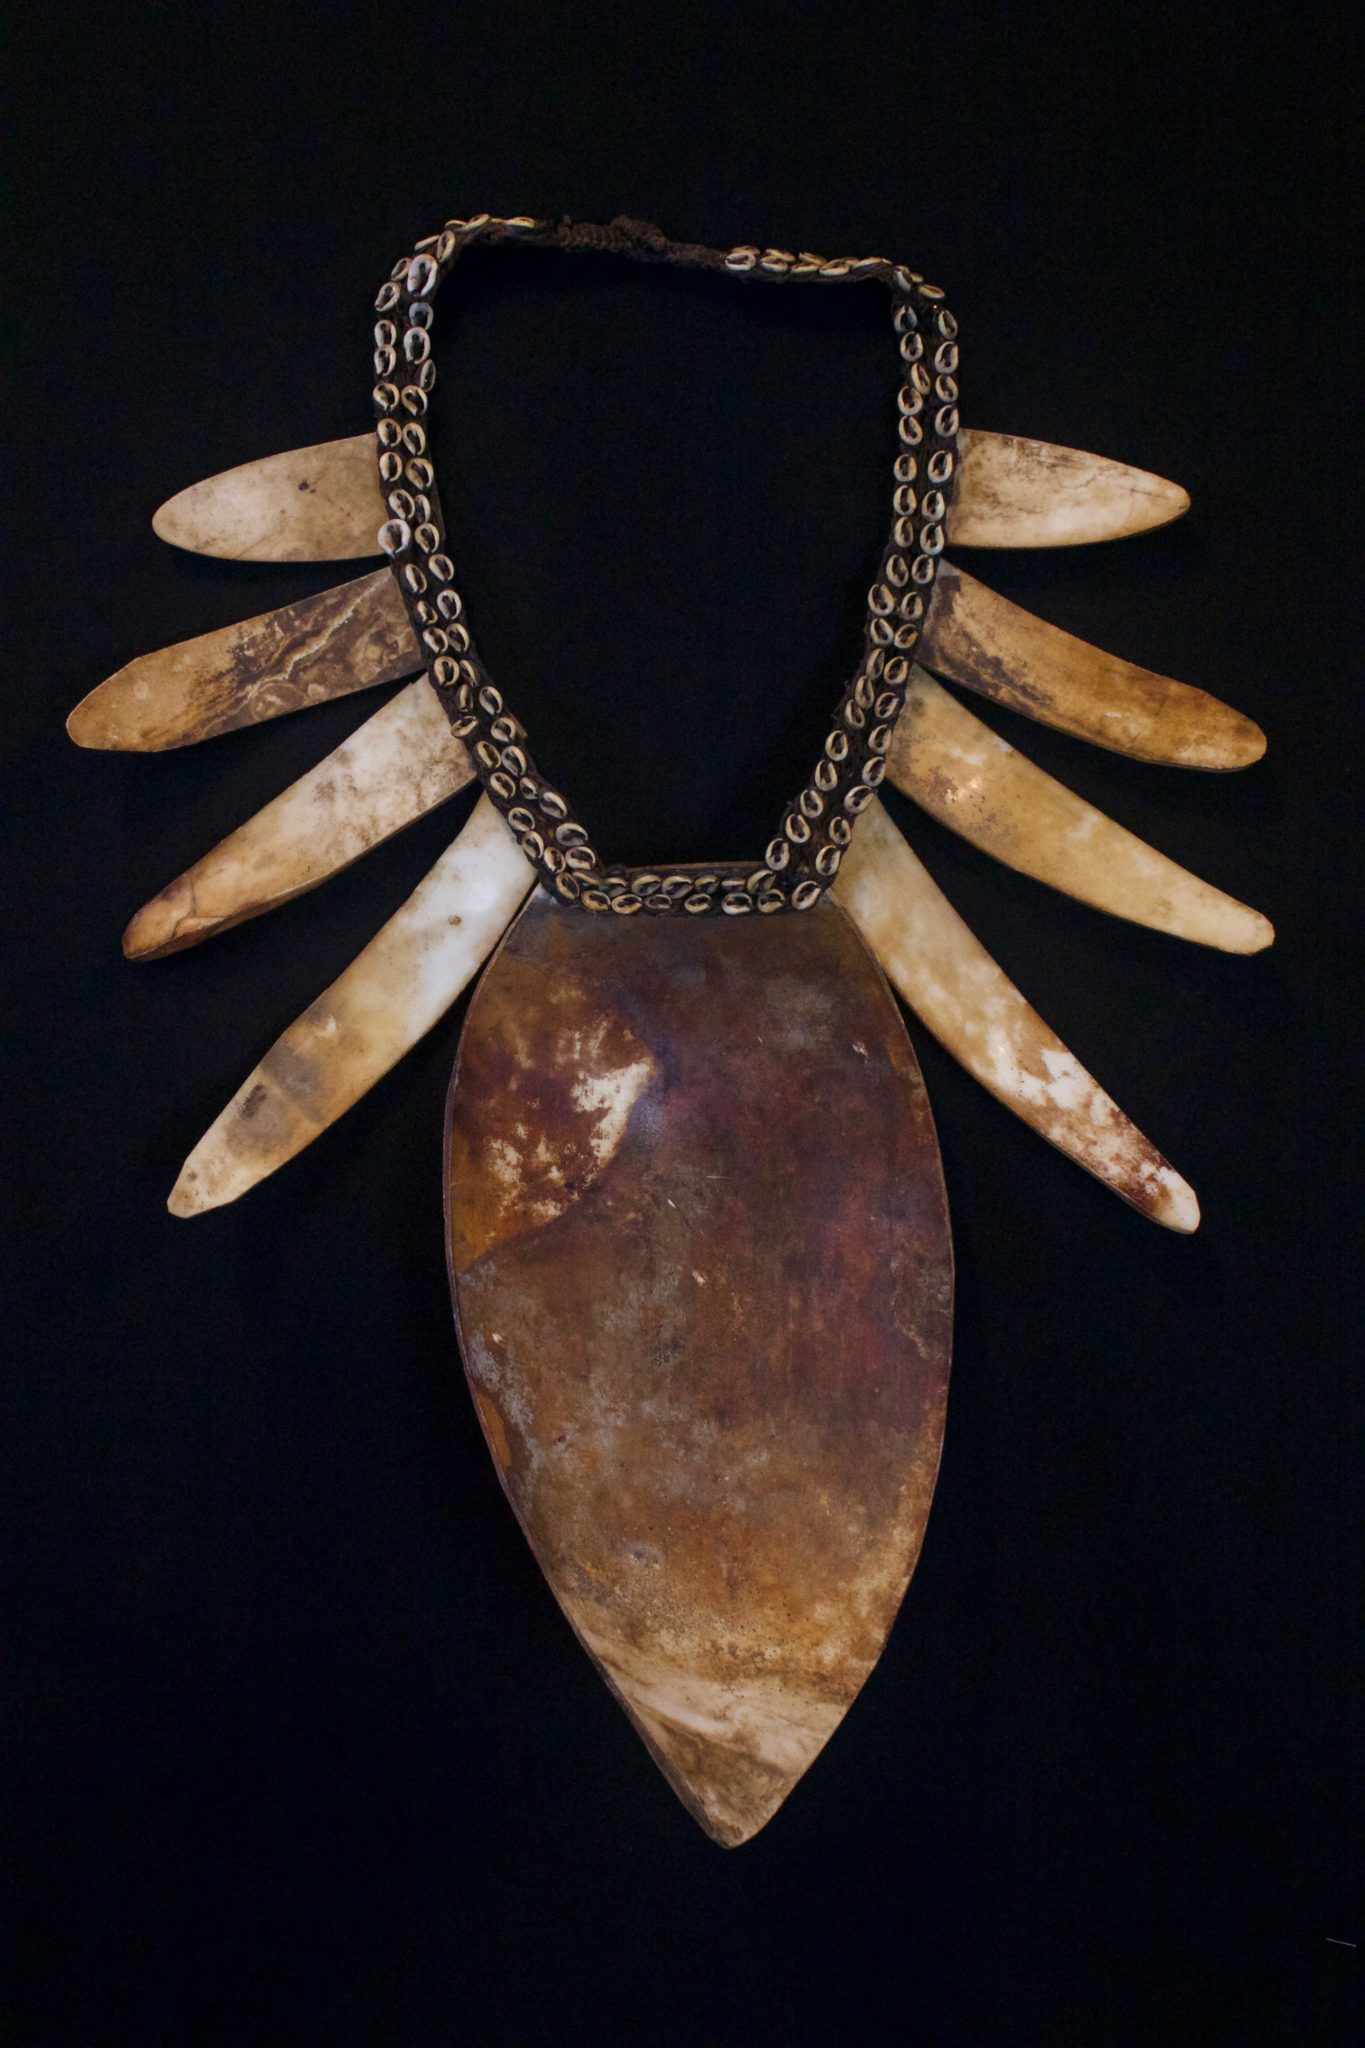 "Shaman Shell Necklace, Papua New Guinea (Irian Jaya), Indonesia, Mid 20th c. Shell, cloth, fiber cord. Worn by the shaman for healing ceremonies. 19"" x 15"" x 3 ½"" $850."